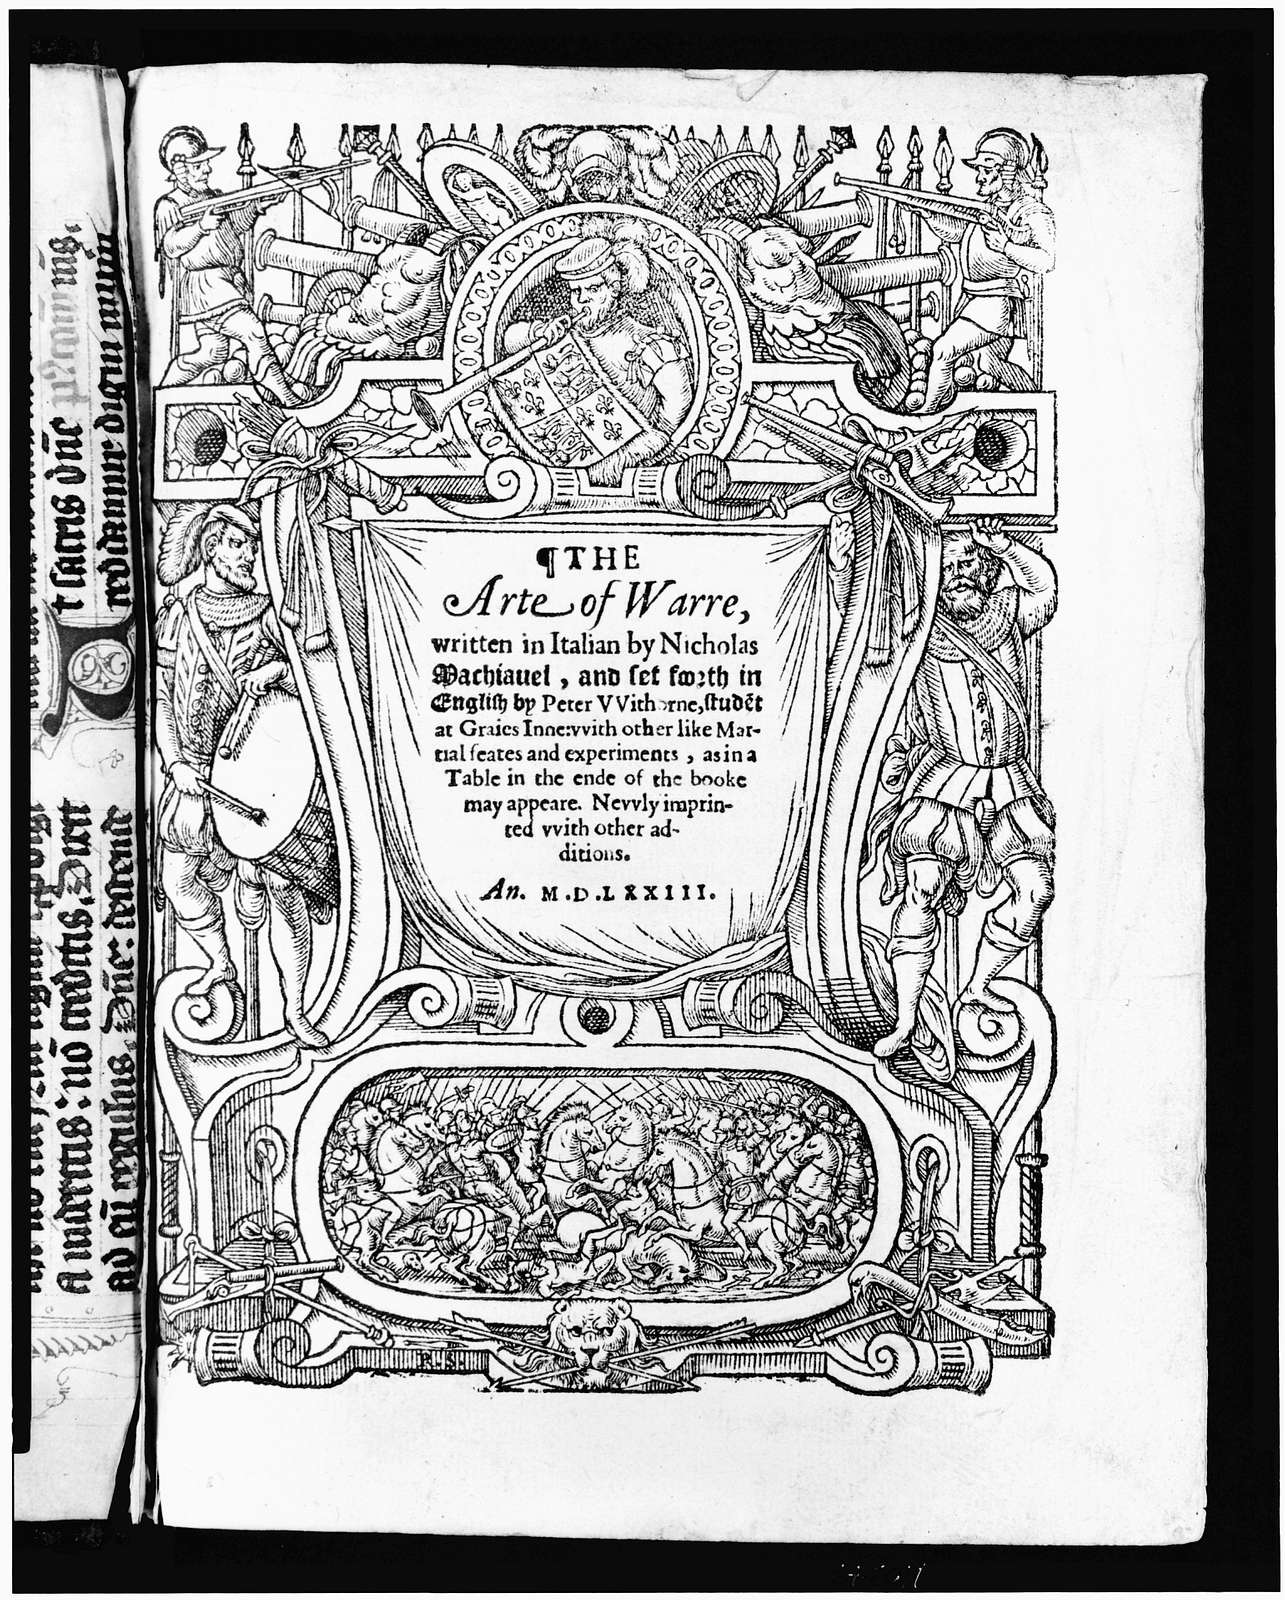 [Title page to The arte of warre by Niccolò Machiavelli]